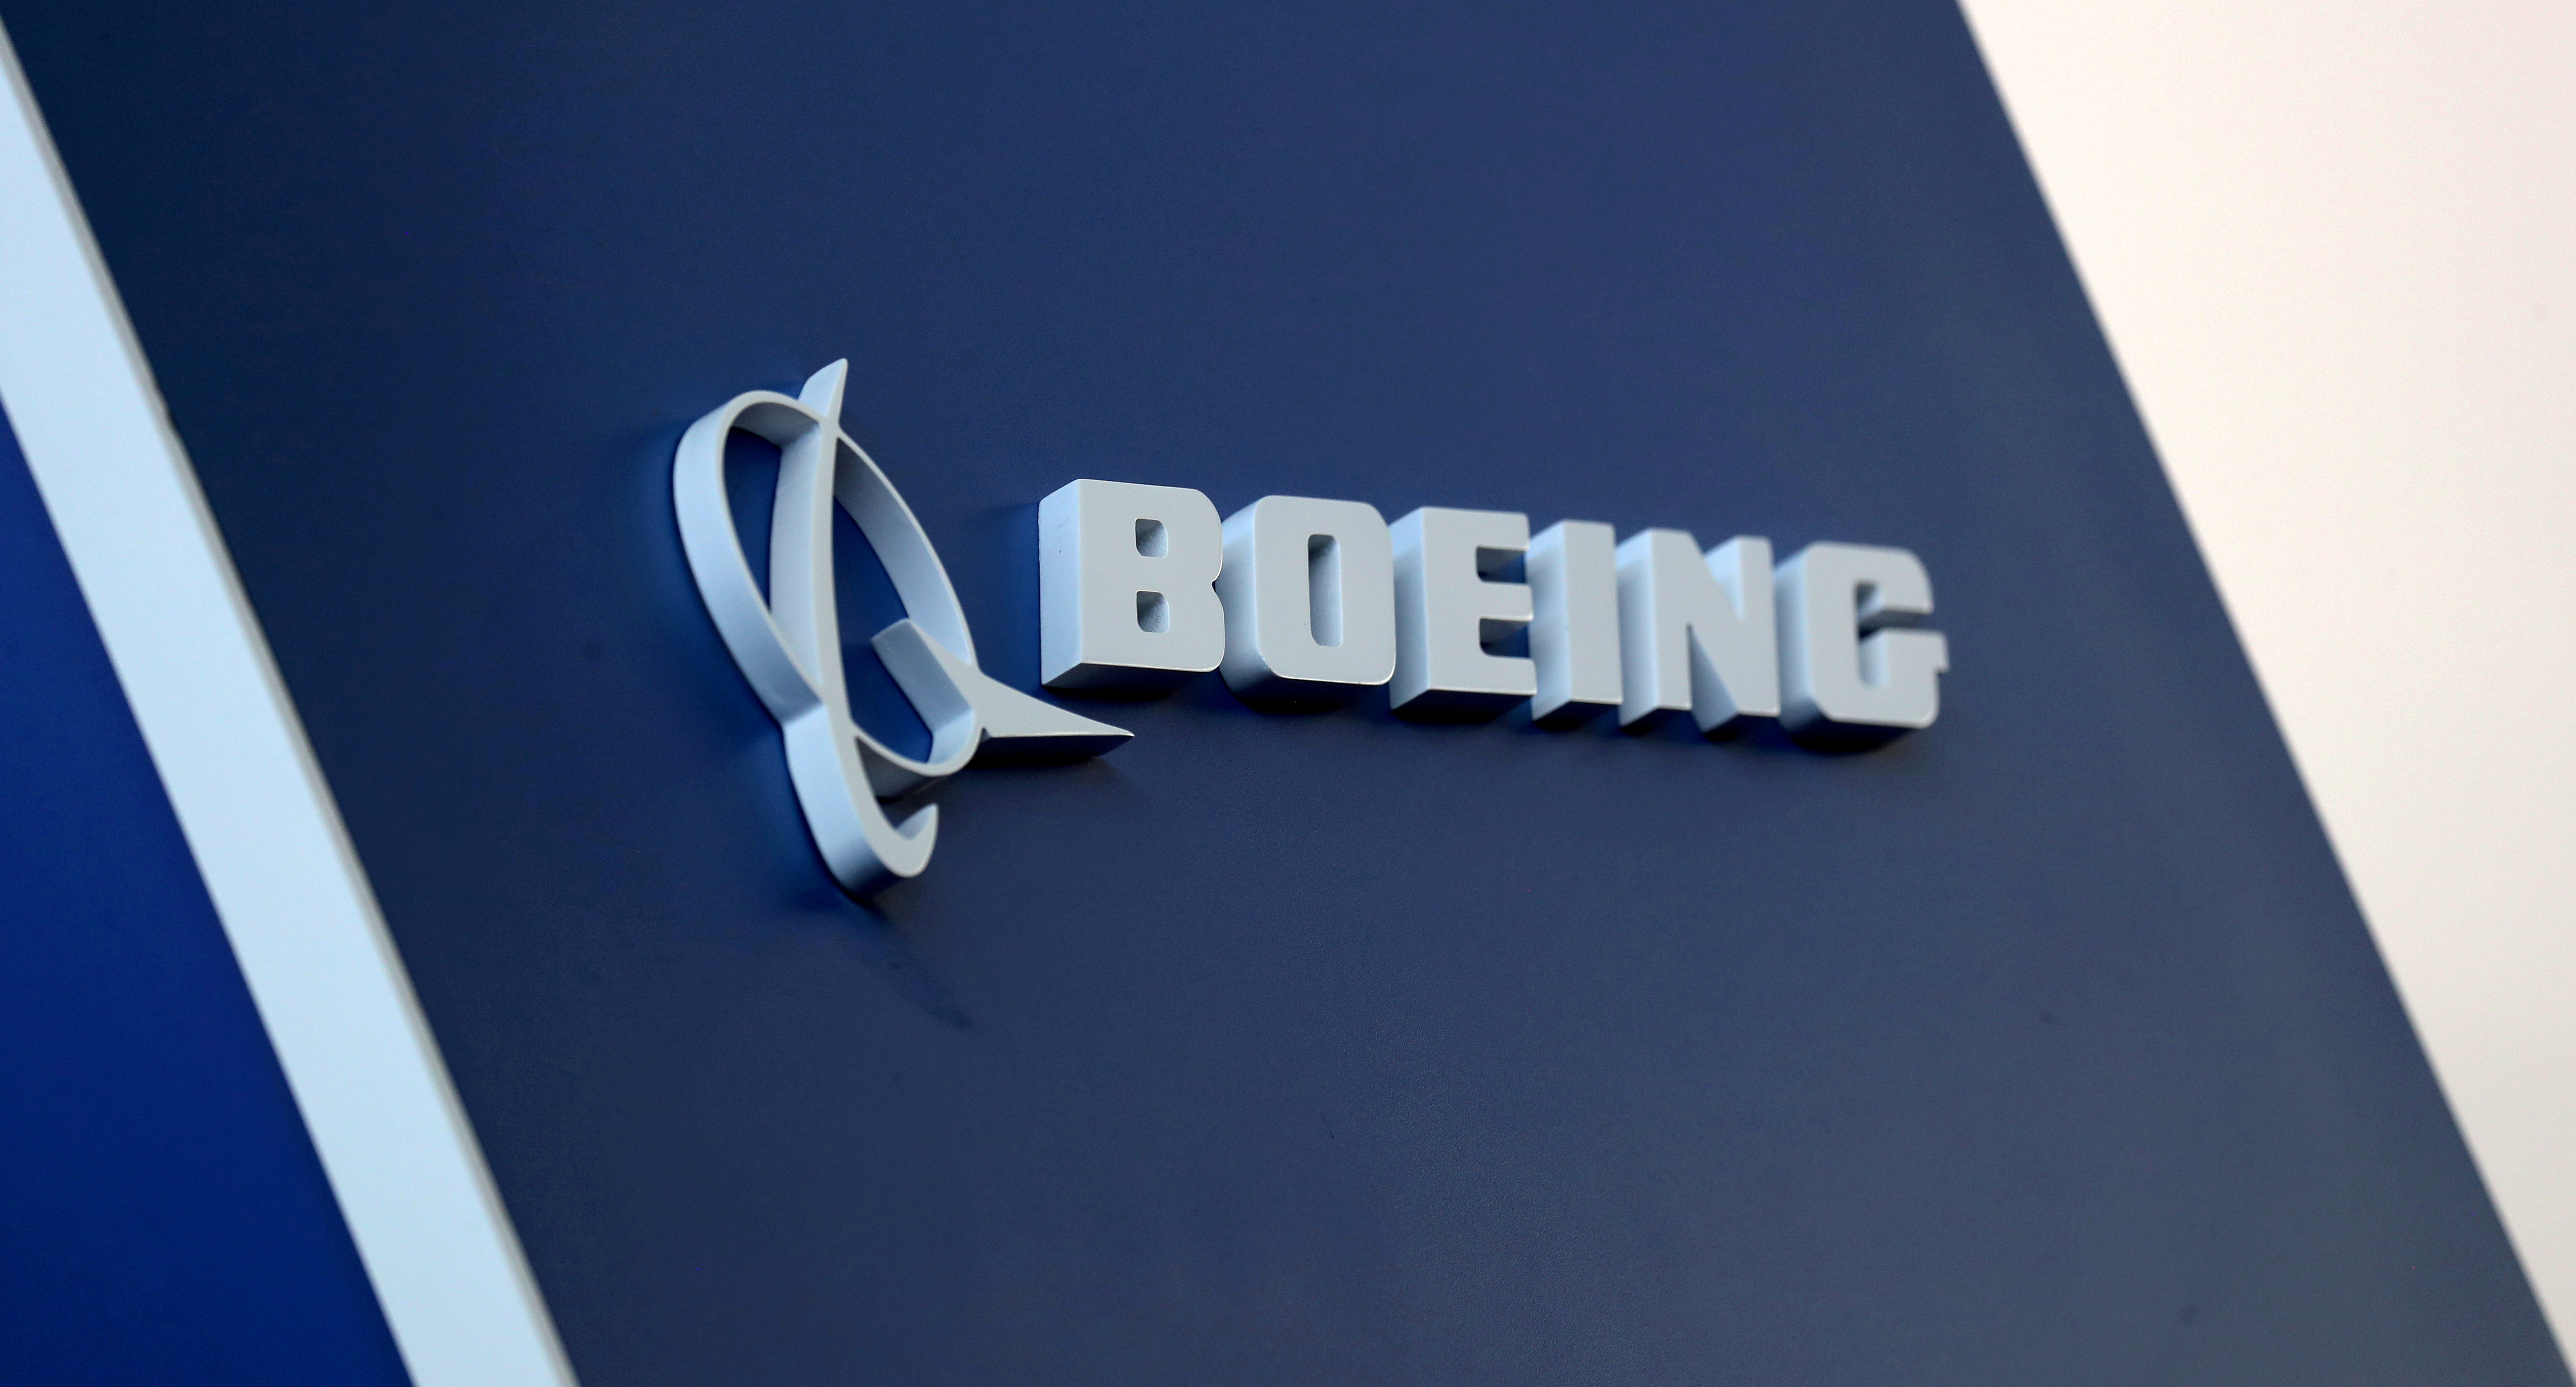 FILE PHOTO: The Boeing logo is pictured at the Latin American Business Aviation Conference & Exhibition fair at Congonhas Airport in Sao Paulo, Brazil August 14, 2018. REUTERS/Paulo Whitaker//File Photo/File Photo